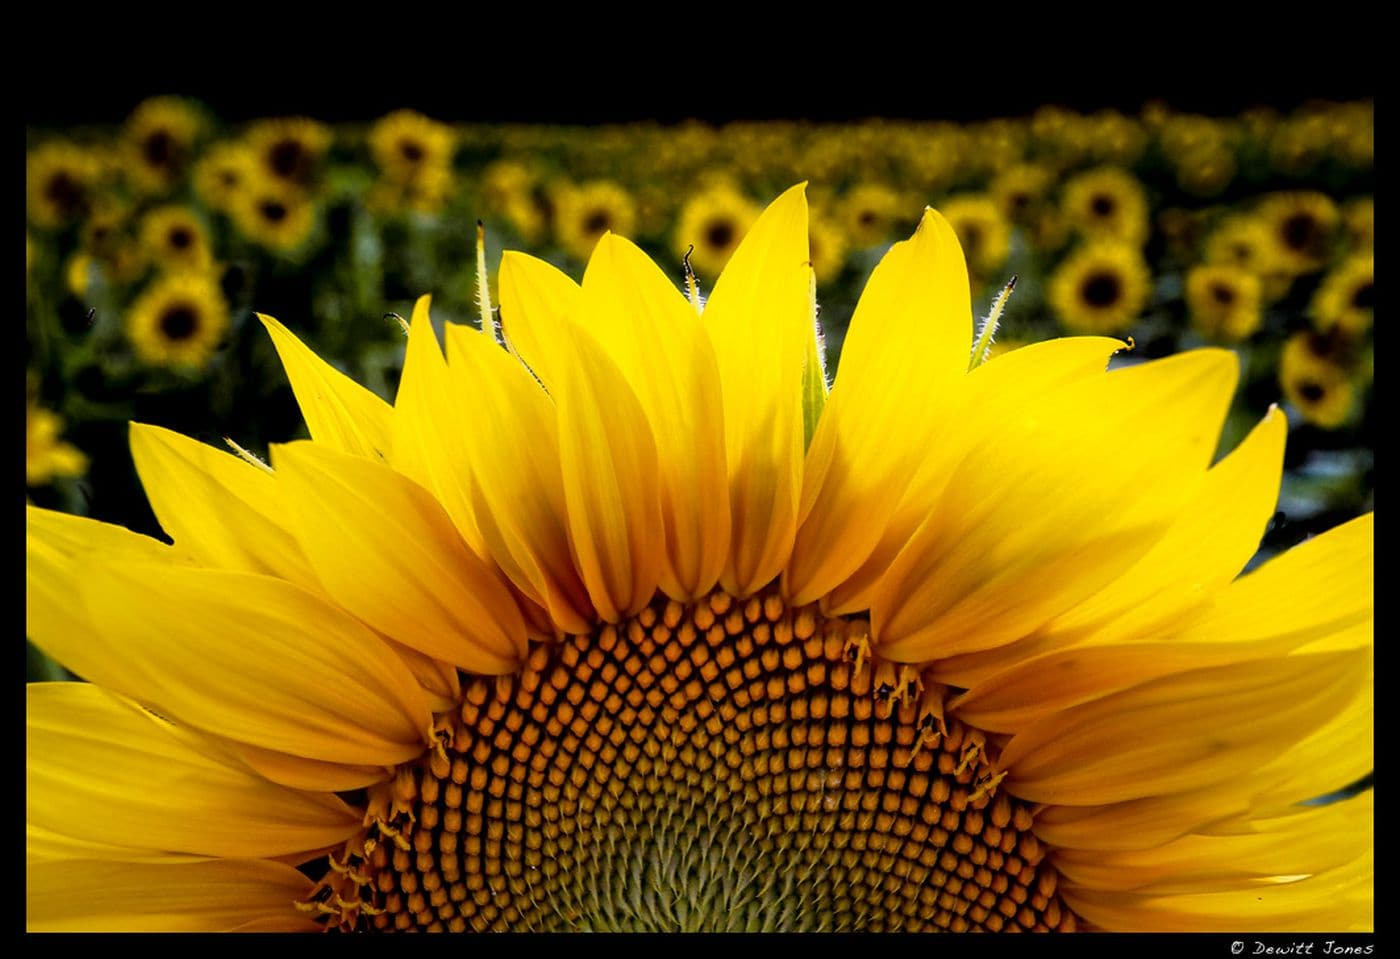 Image: Sunflower close up with a field of sunflowers in the background